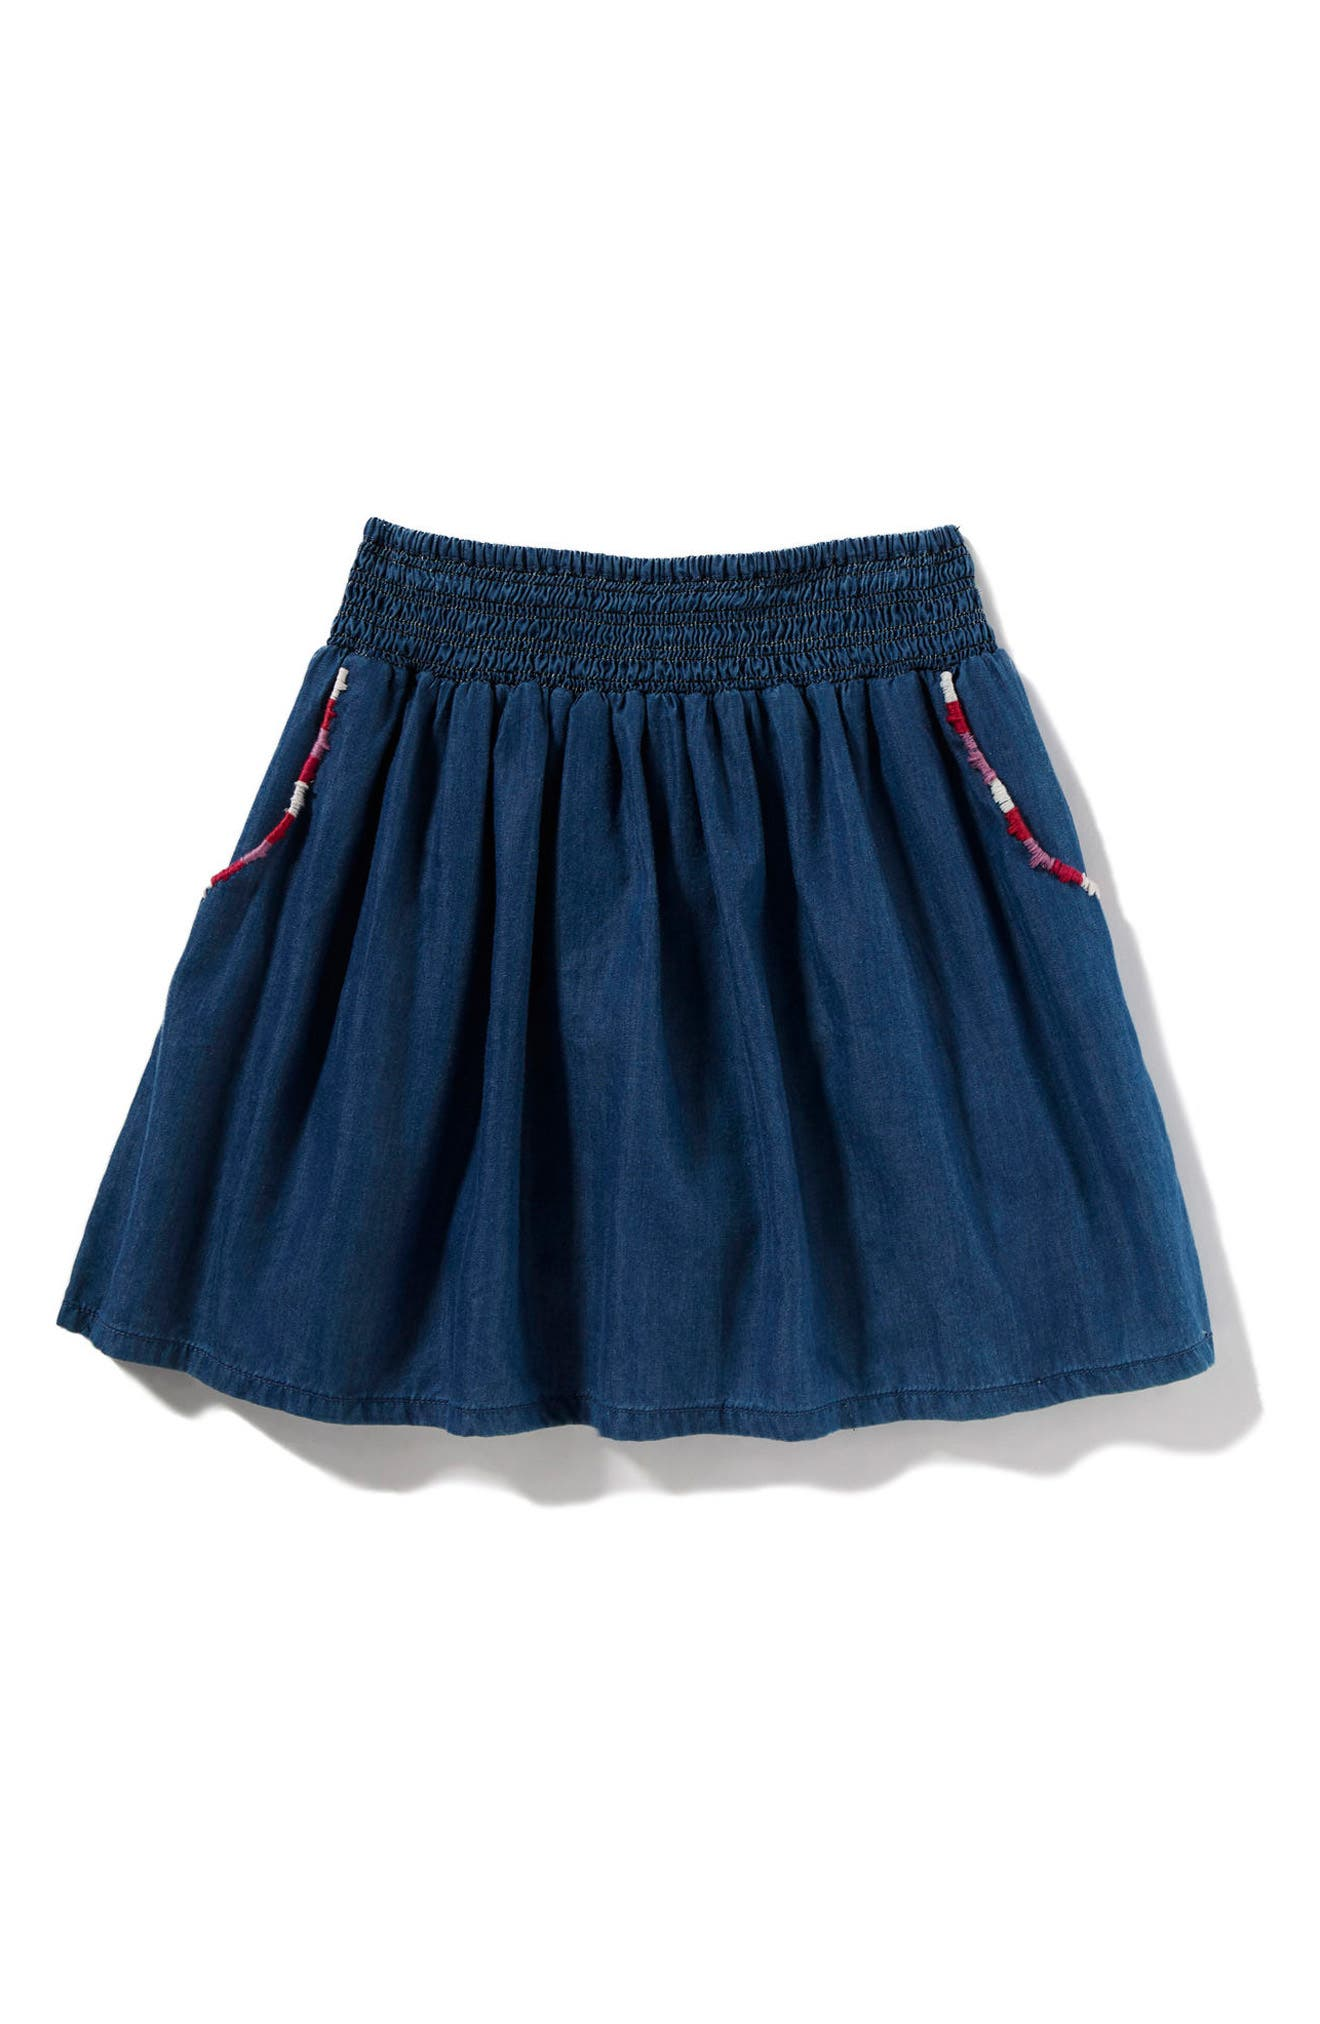 Alternate Image 1 Selected - Peek Bellen Chambray Skort (Toddler Girls, Little Girls & Big Girls)